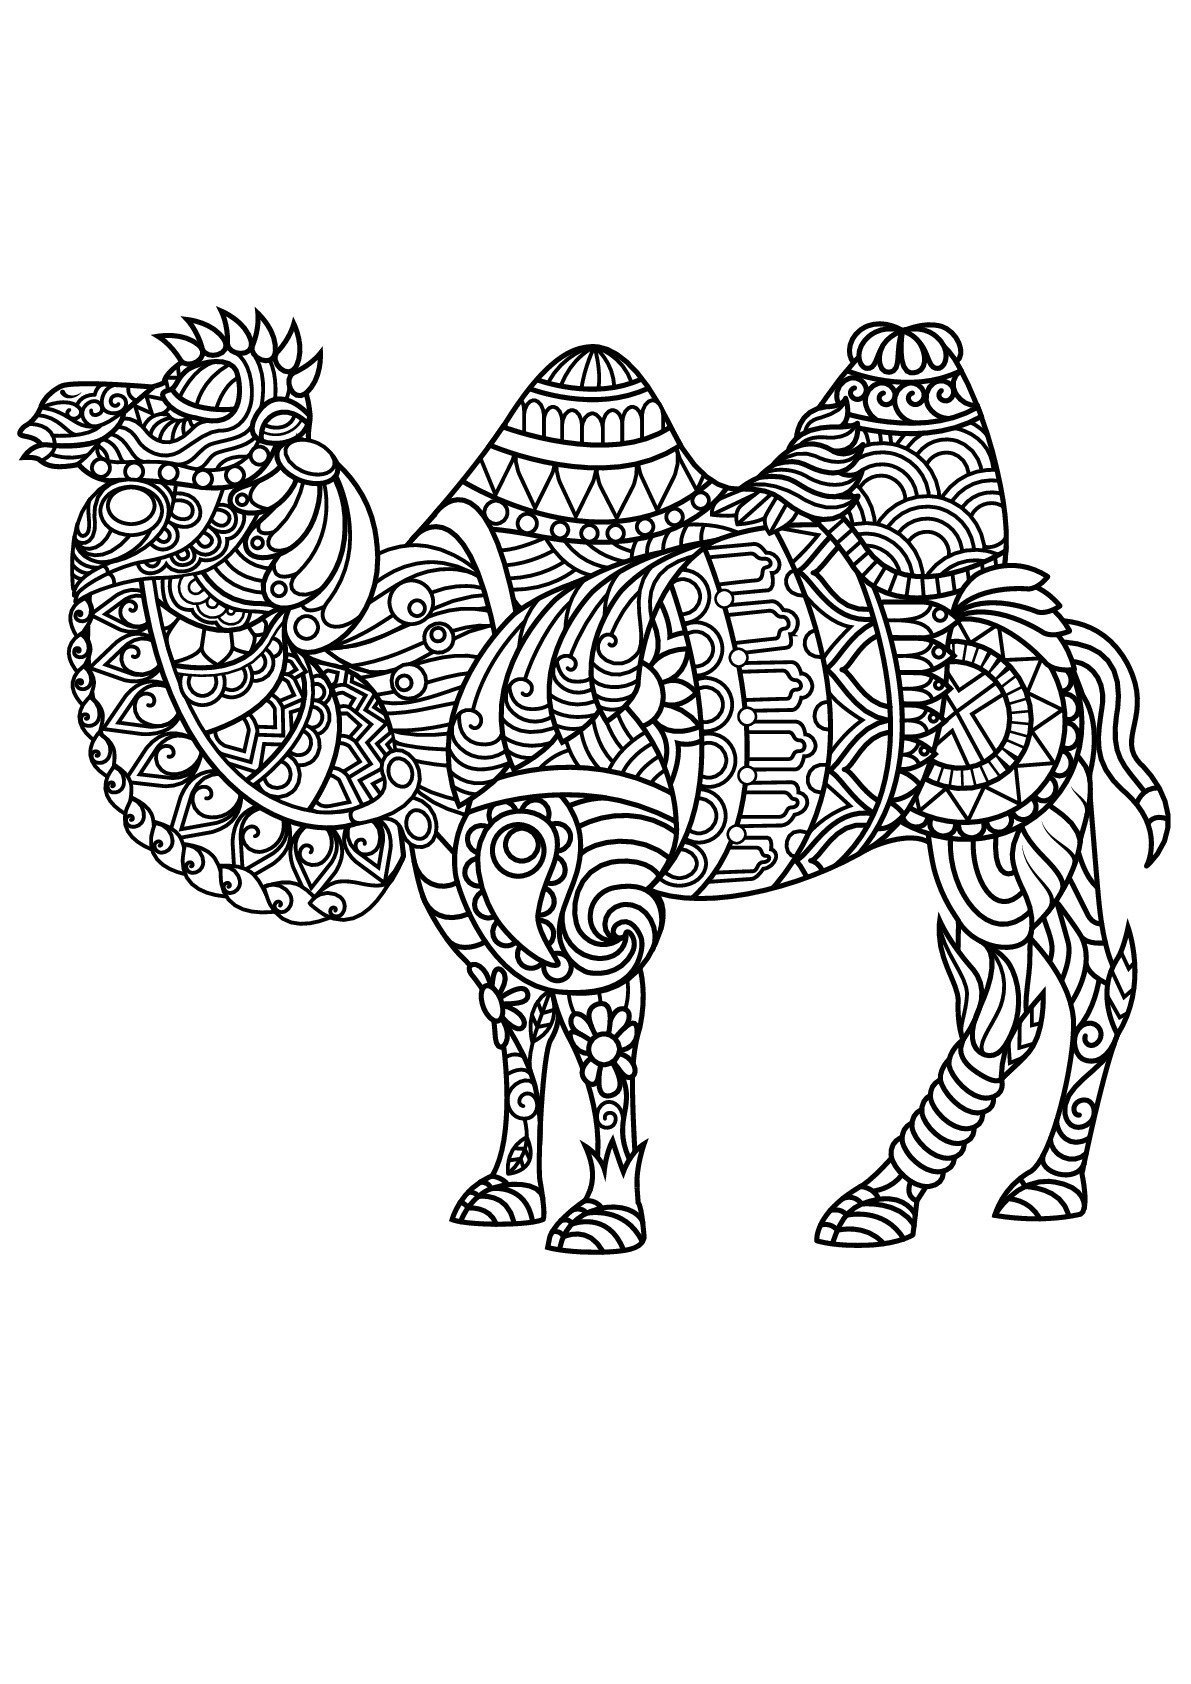 camels coloring pages dromedary zentangle camels dromedaries adult coloring camels coloring pages